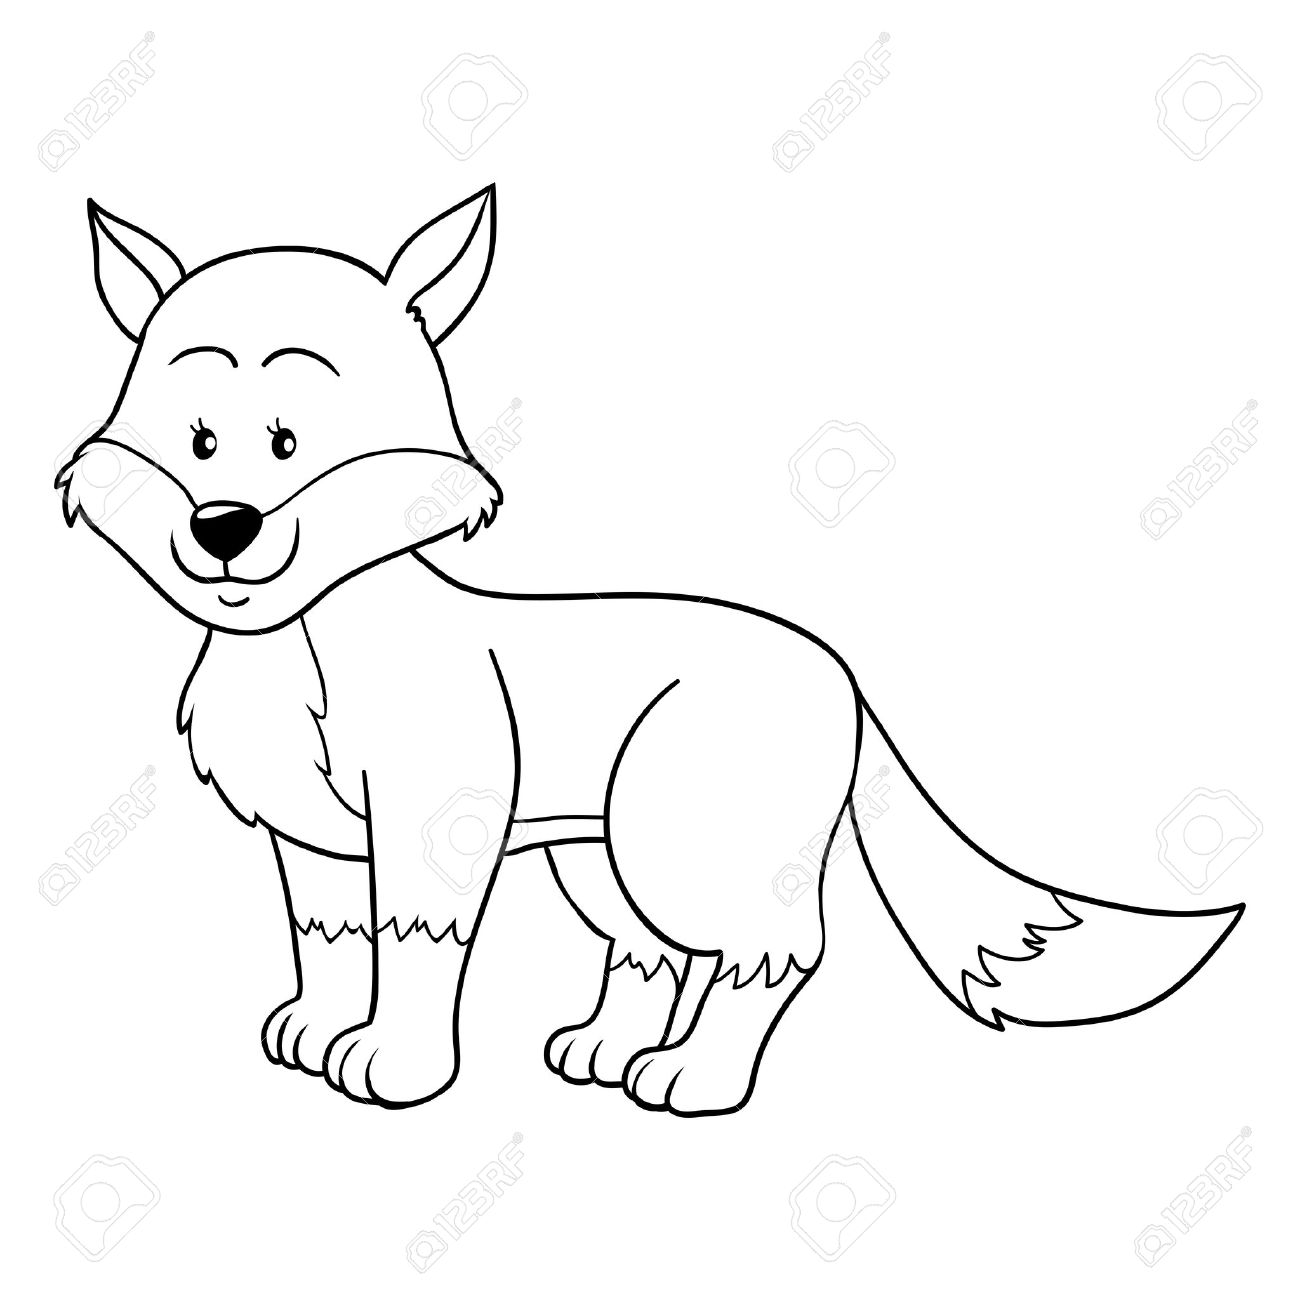 Coloring Book (fox) Royalty Free Cliparts, Vectors, And Stock ...